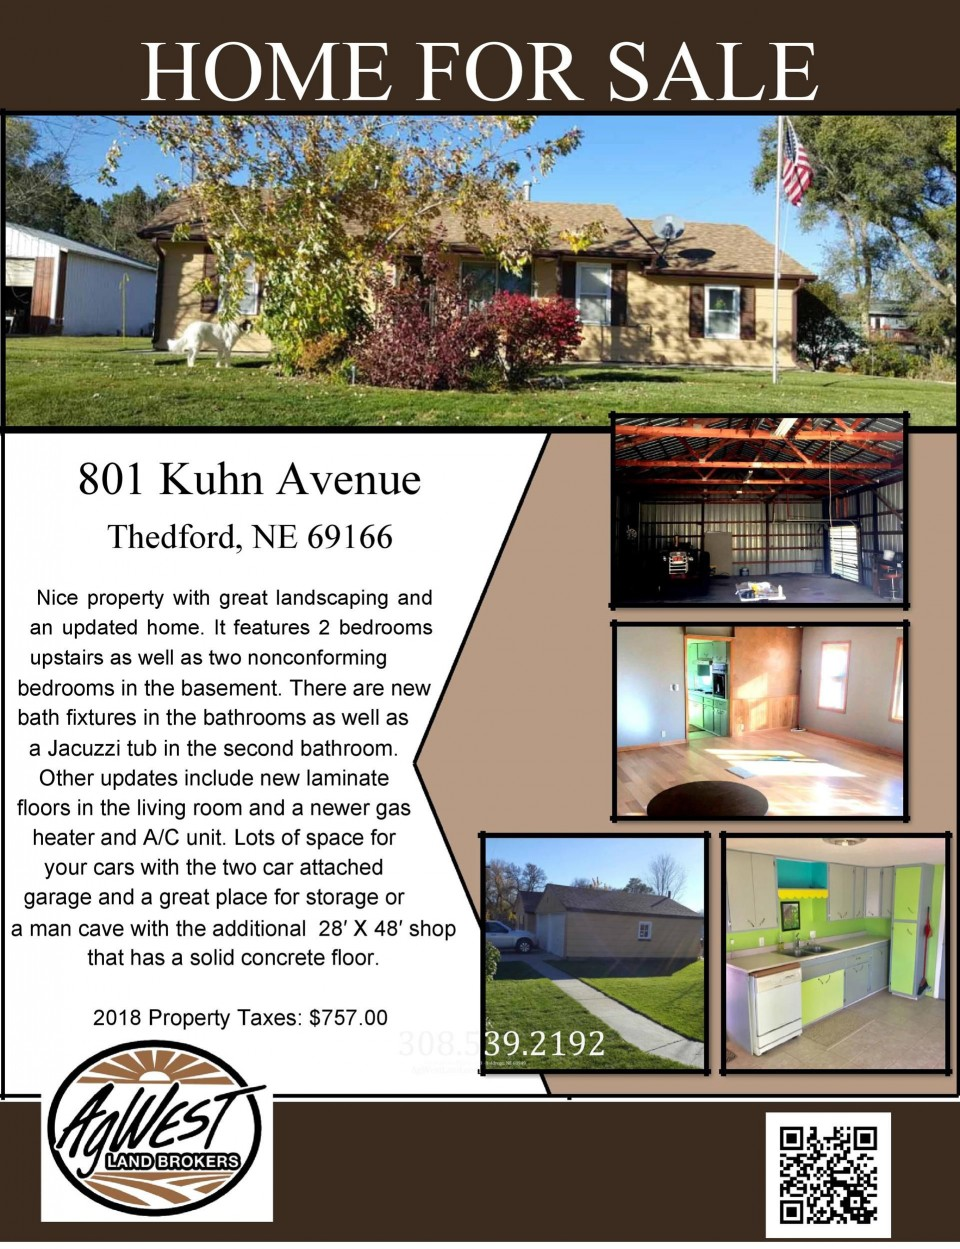 004 Striking House For Sale Flyer Template Sample  Free Real Estate Example By Owner960